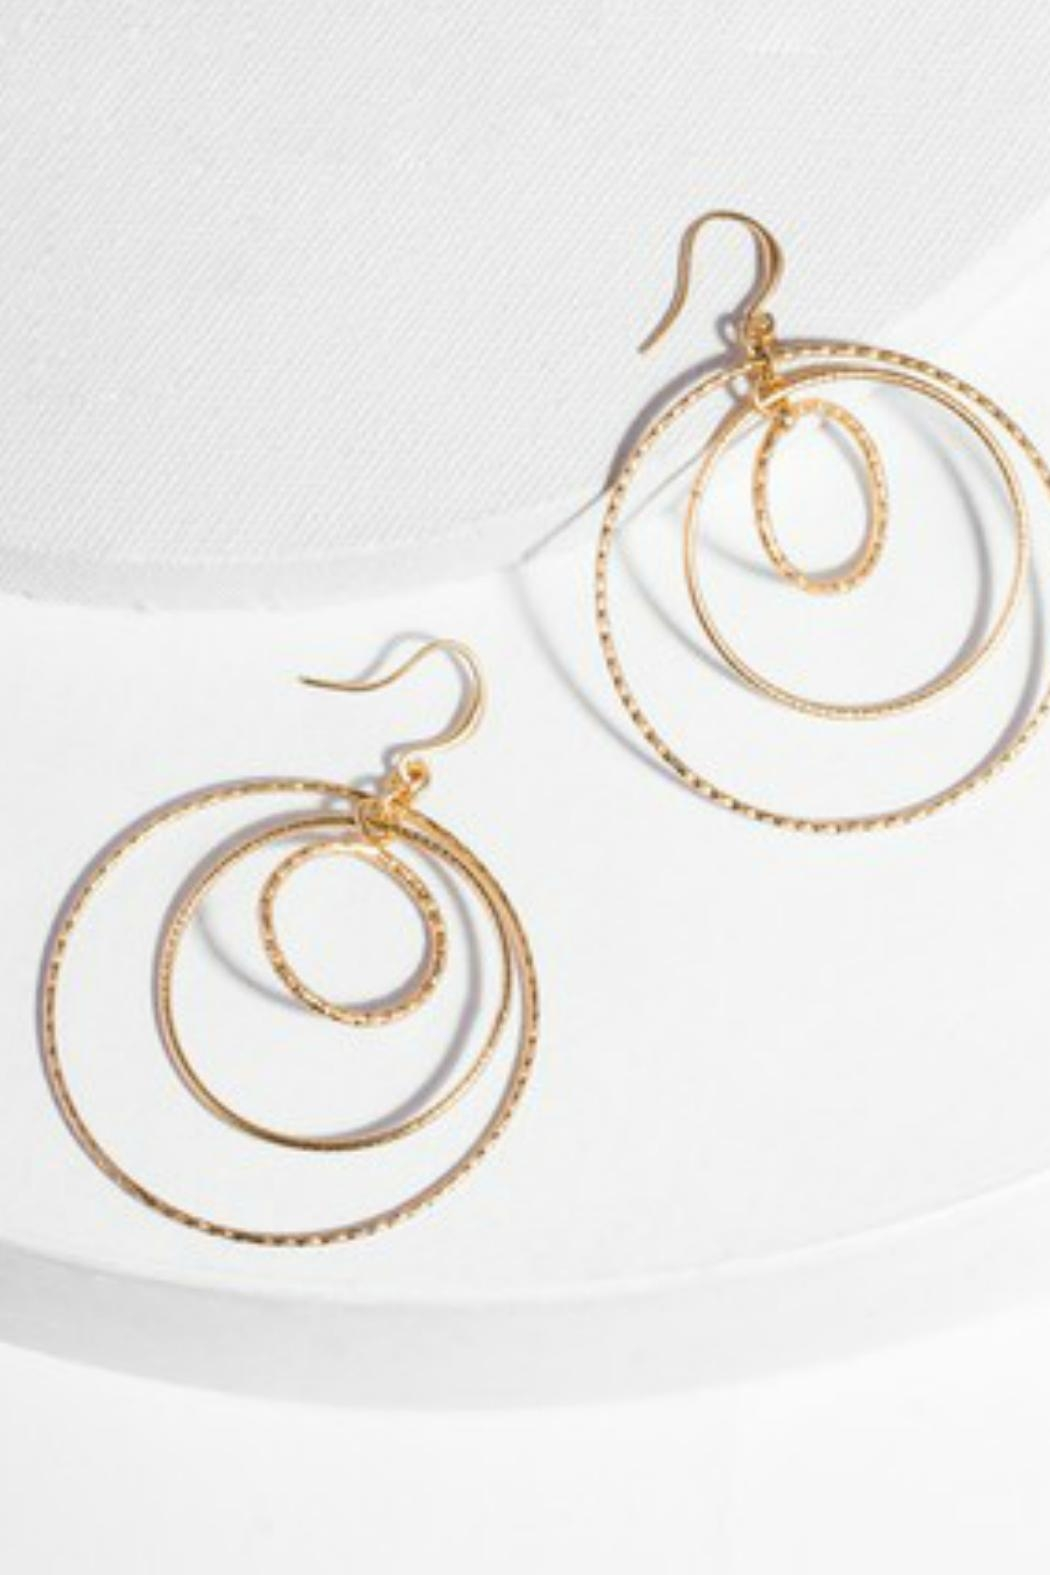 Saachi Chandelier Circle Earrings - Main Image